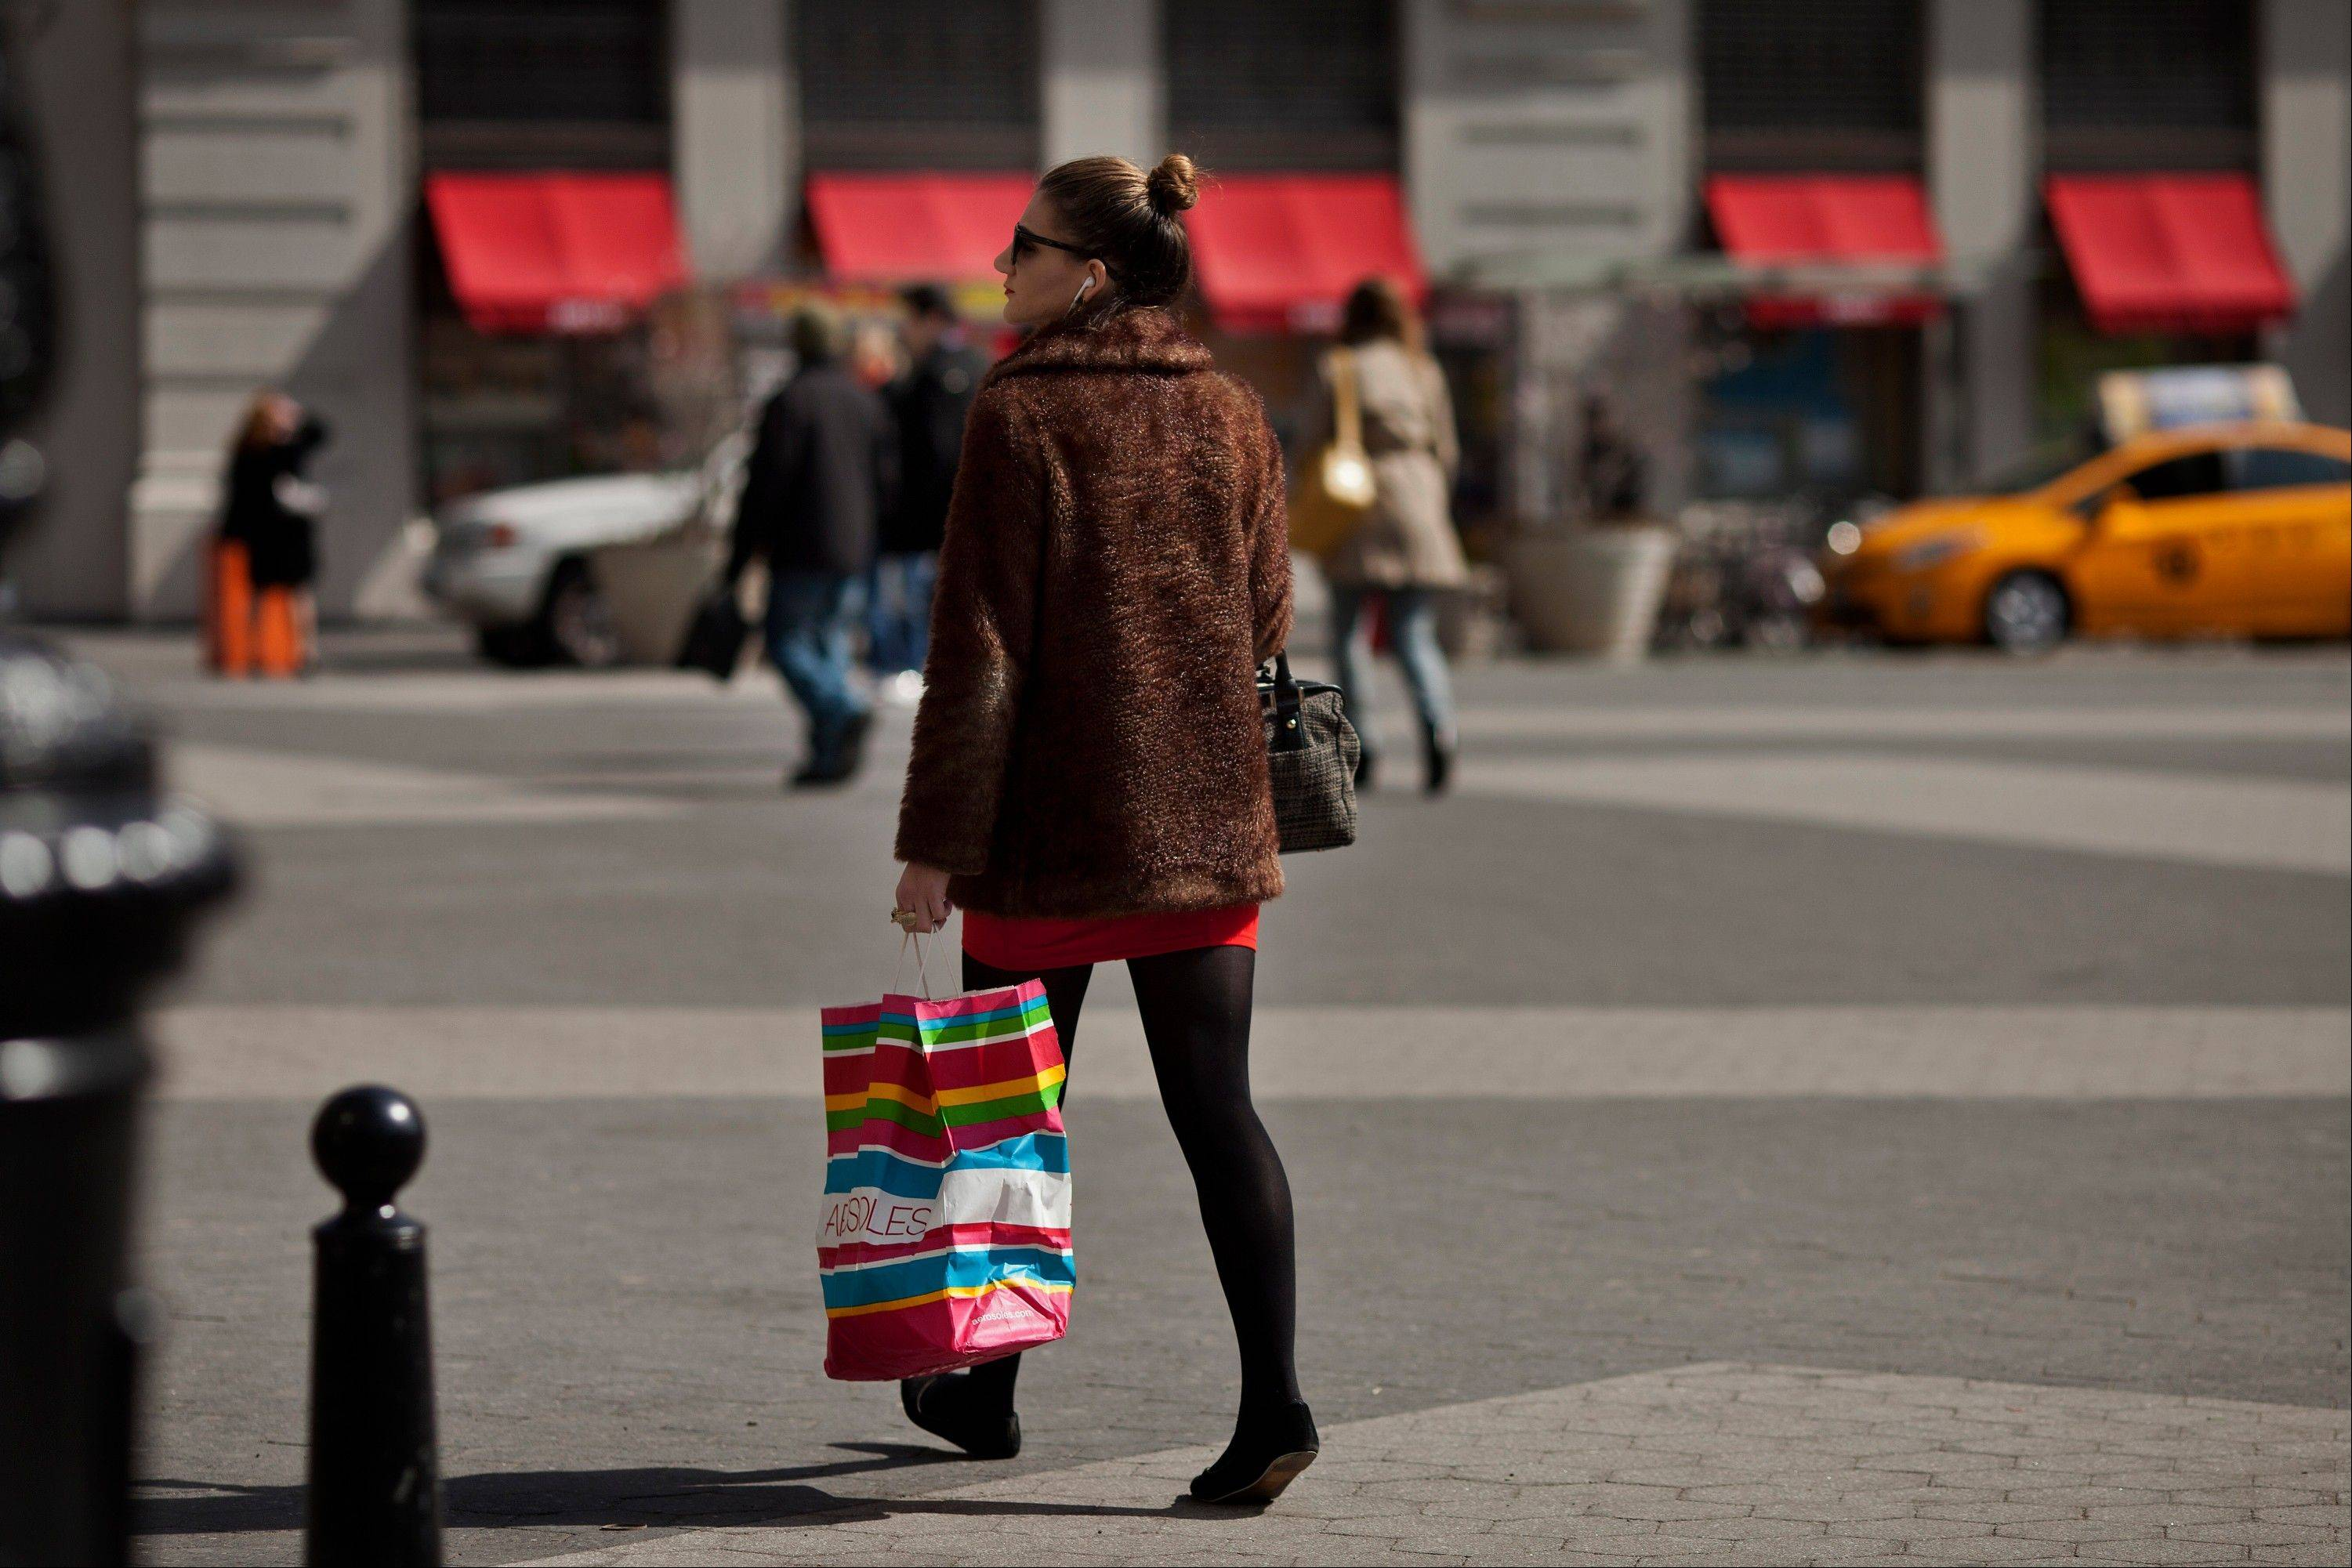 A woman carries an Aerosoles shopping bag while walking through Union Square in New York, U.S., on Thursday, April 4, 2013. Confidence among U.S. consumers stabilized last week, stemming a pullback in sentiment that had threatened to check recent gains in spending.